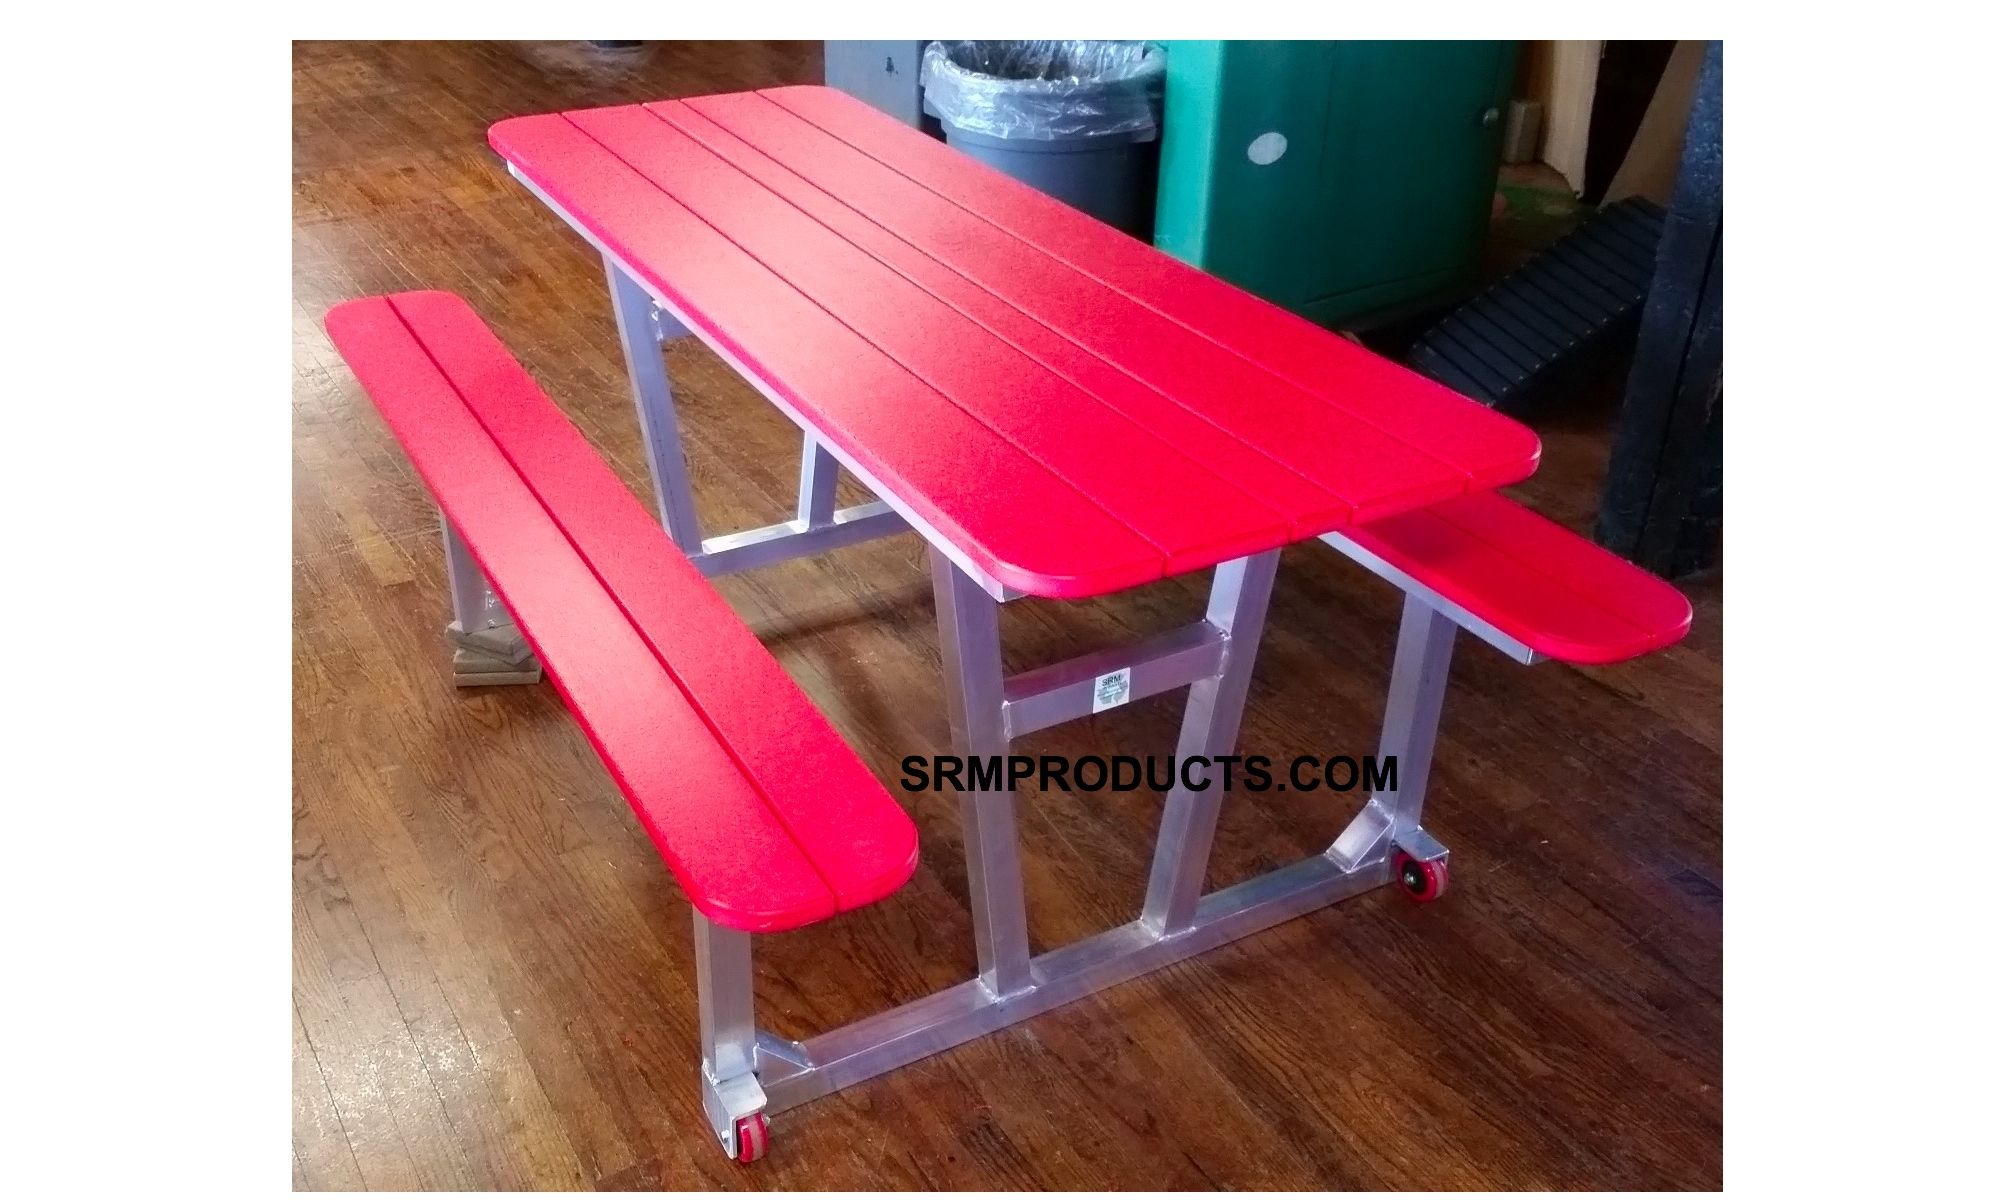 Custom Made Polywood Trex Picnic Table With An Aluminum Frame With - Picnic table recycled plastic lumber